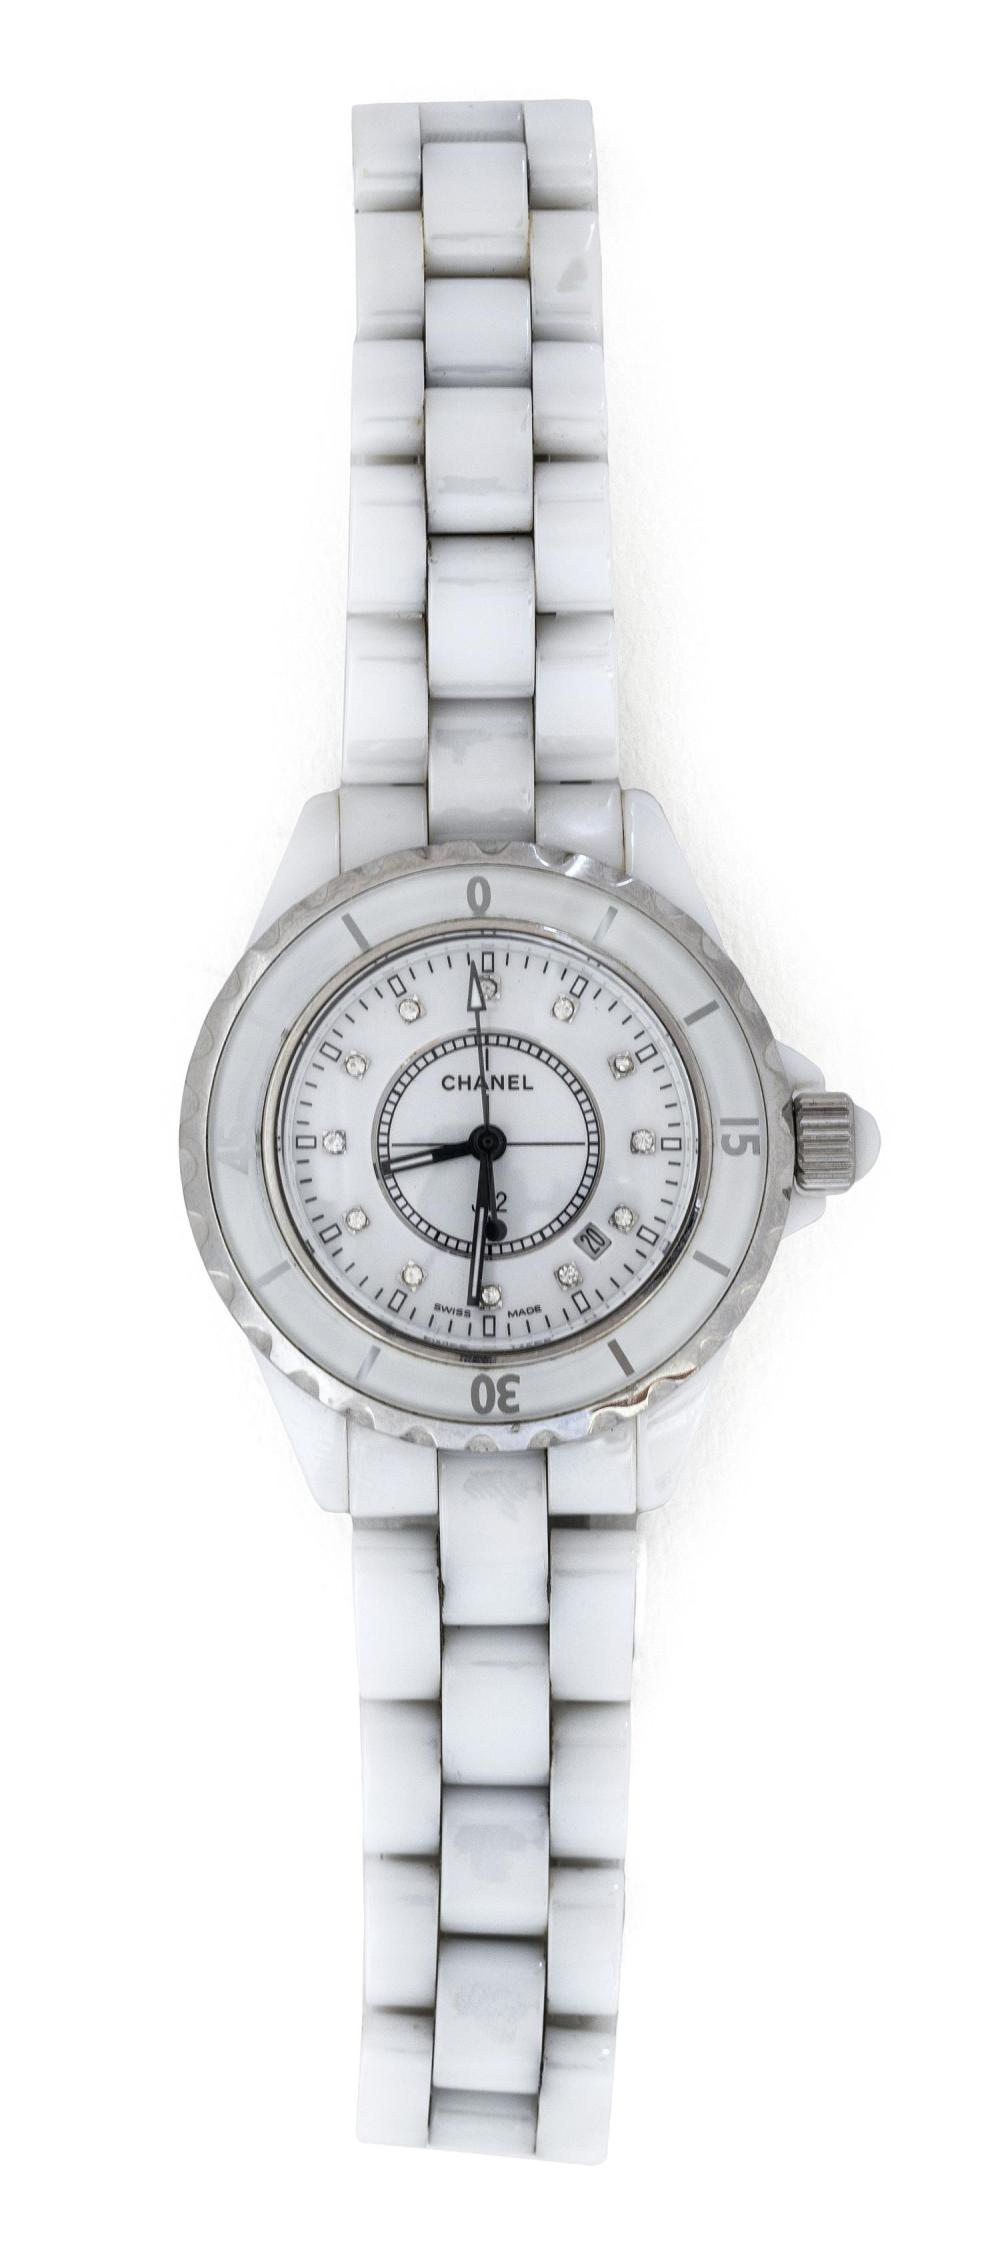 CHANEL WHITE CERAMIC, STEEL AND DIAMOND J12 LADY'S WRIST WATCH Numbered D. M. 82050. Quartz movement. Dial with diamond sticks and d..